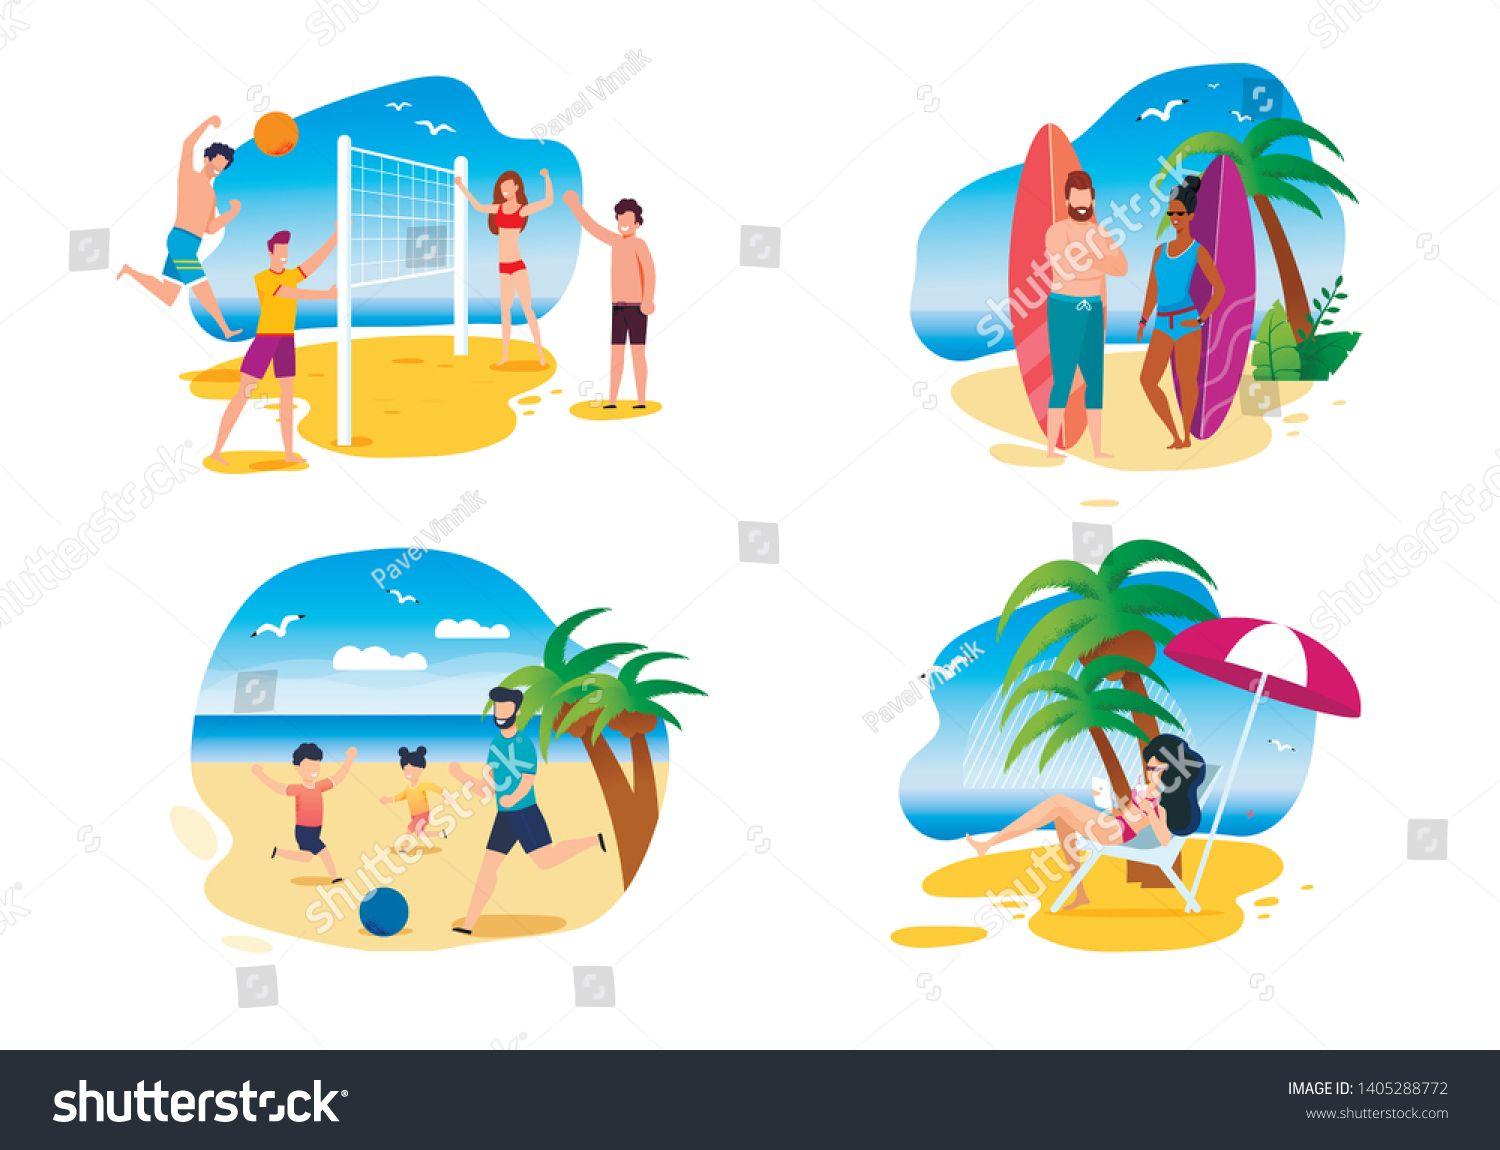 Family And Friends Summer Activities On Beach Cartoon People Playing Volleyball And Football On Sand R Cartoon People Summer Activities Business Icons Design